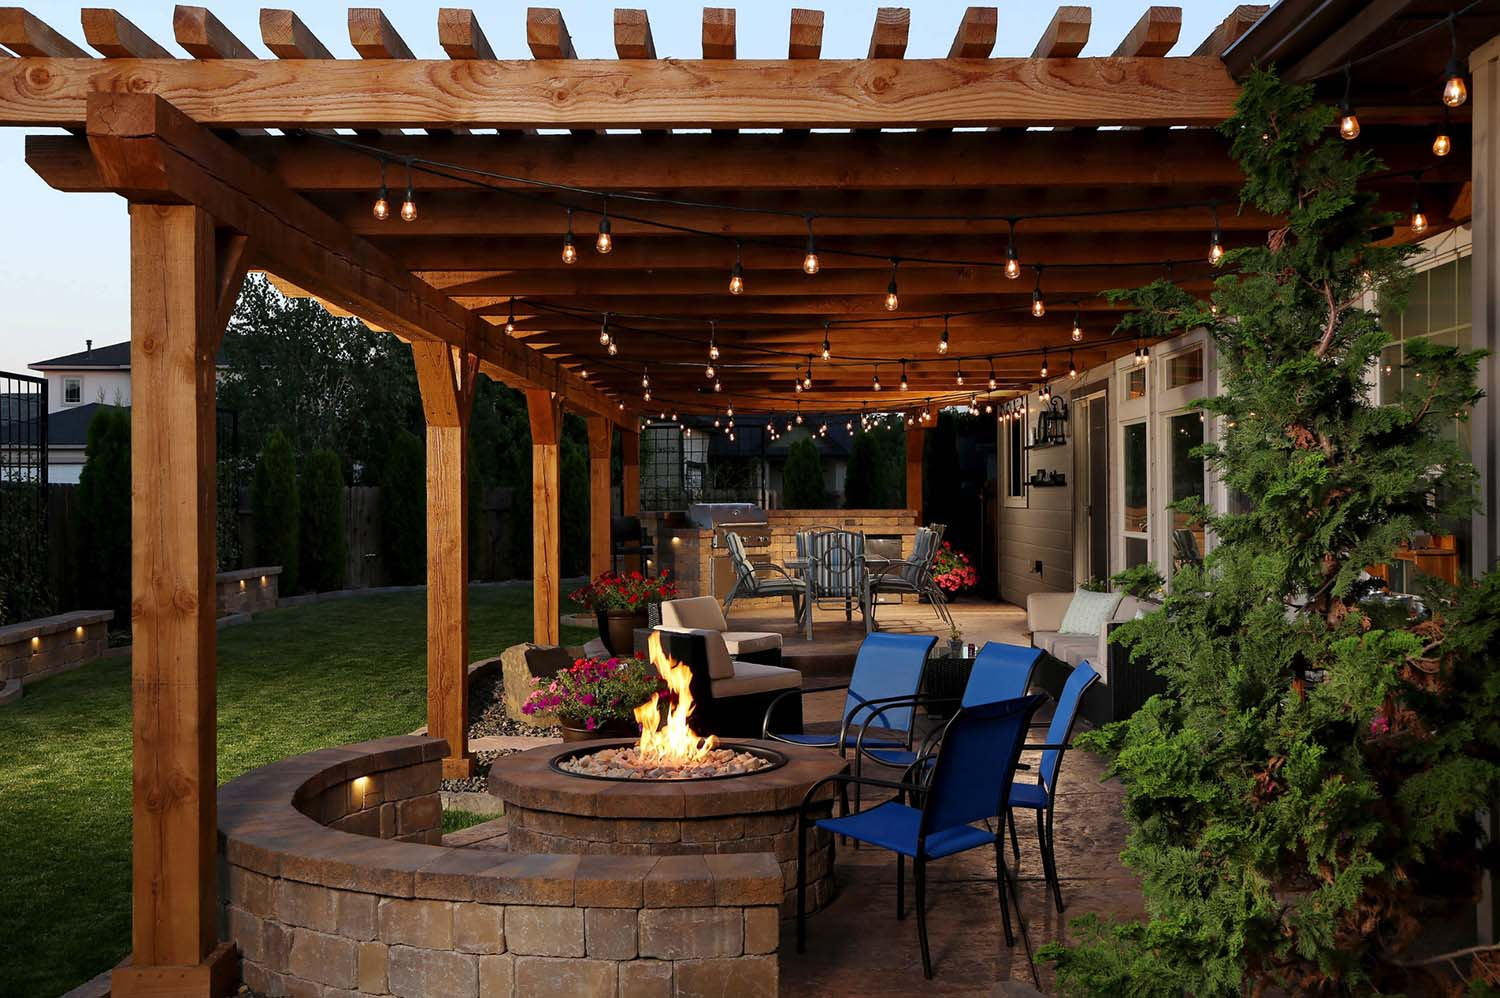 fabulous outdoor patio ideas kindesign fancy outdoor patio ideas MTJQBFP